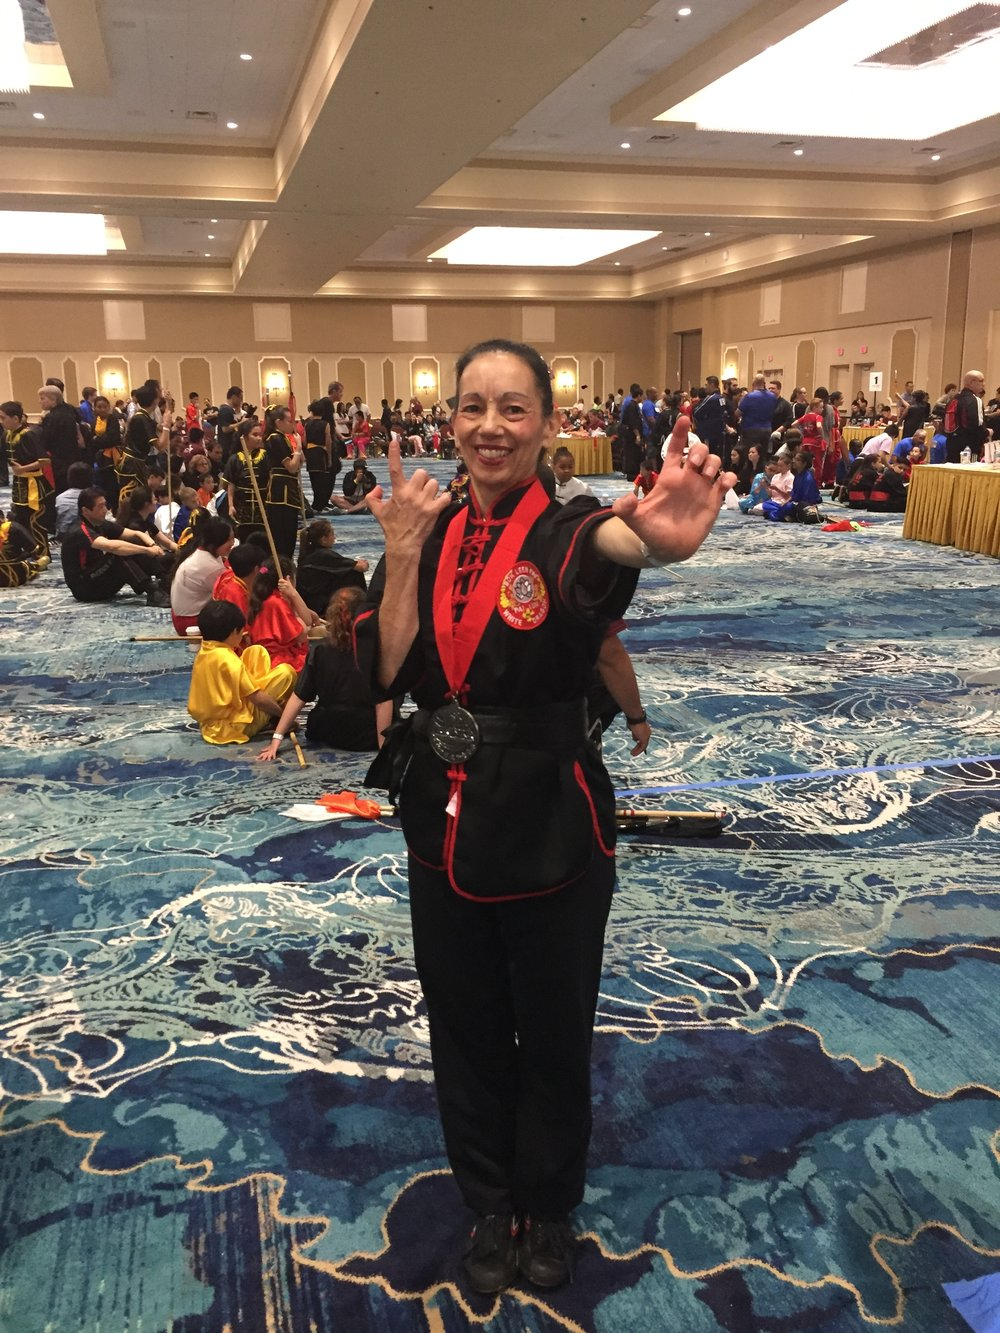 Silver medal advanced women's empty hand - ICMAC Orlando 6.30.18. An honor to perform in the evening Masters Demonstration as well with so many incredible martial artists! -